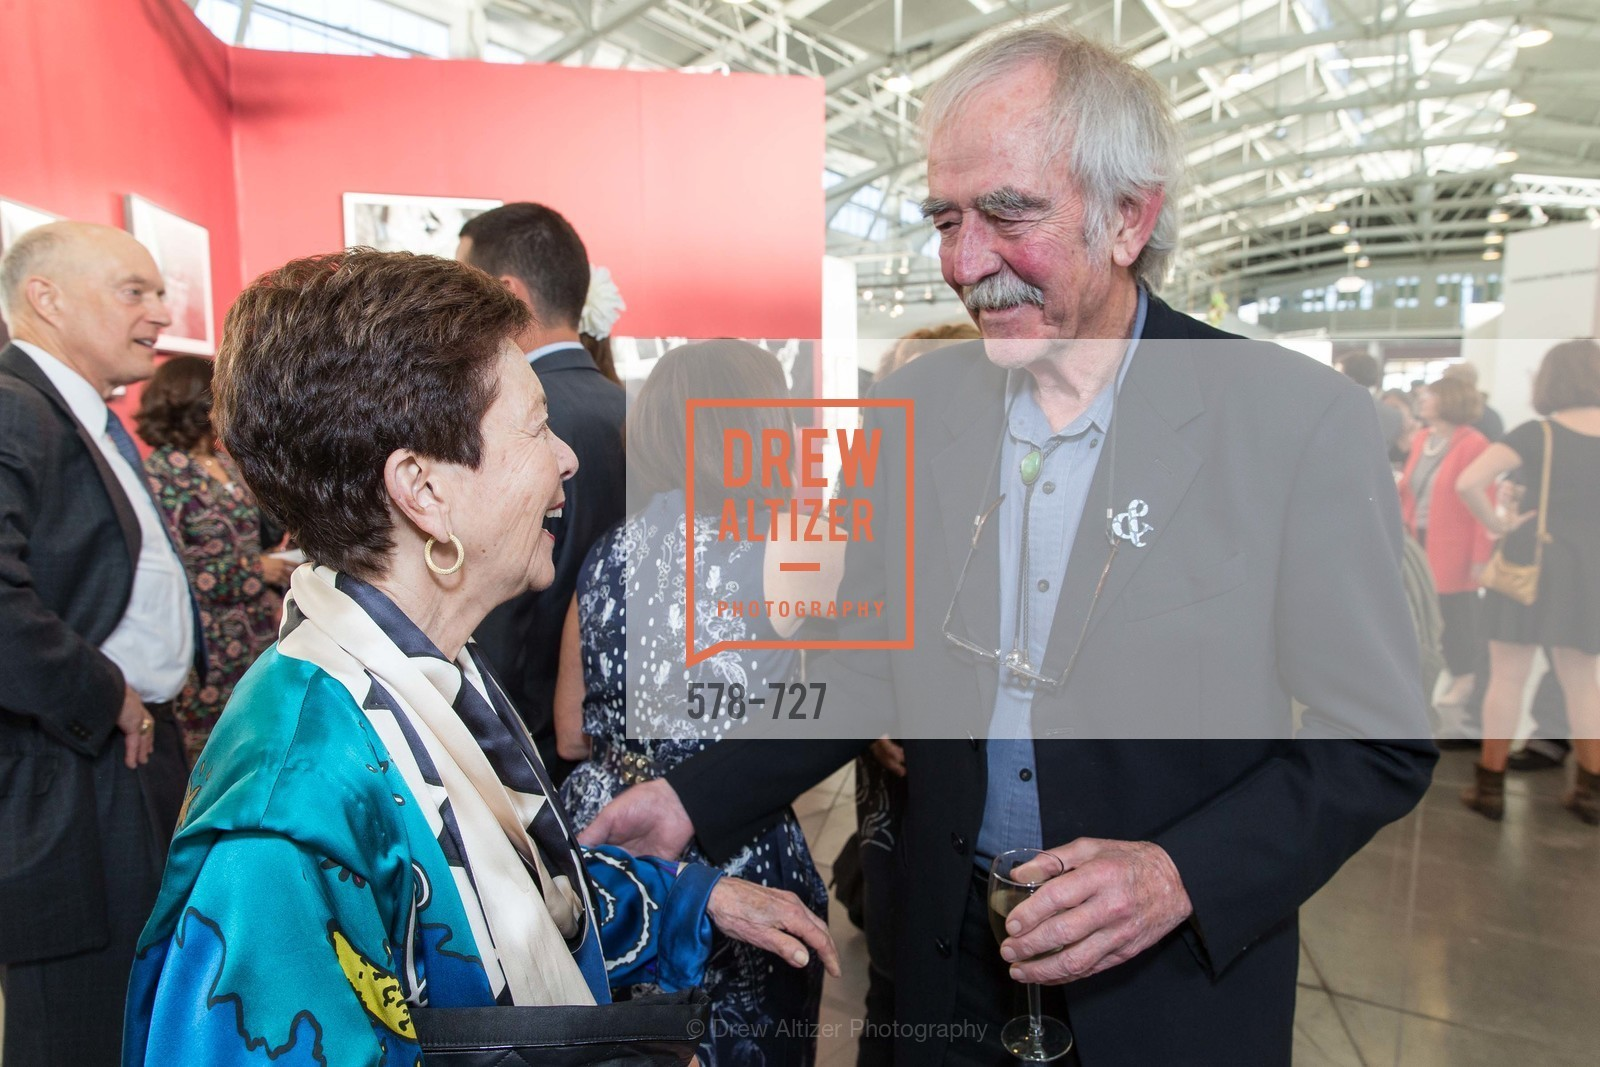 Cissie Swig, William Wiley, SAN FRANCISCO ART INSTITUTE Gala Honoring Art Visionary and Advocate ROSELYNE CHROMAN SWIG, US, May 13th, 2015,Drew Altizer, Drew Altizer Photography, full-service agency, private events, San Francisco photographer, photographer california